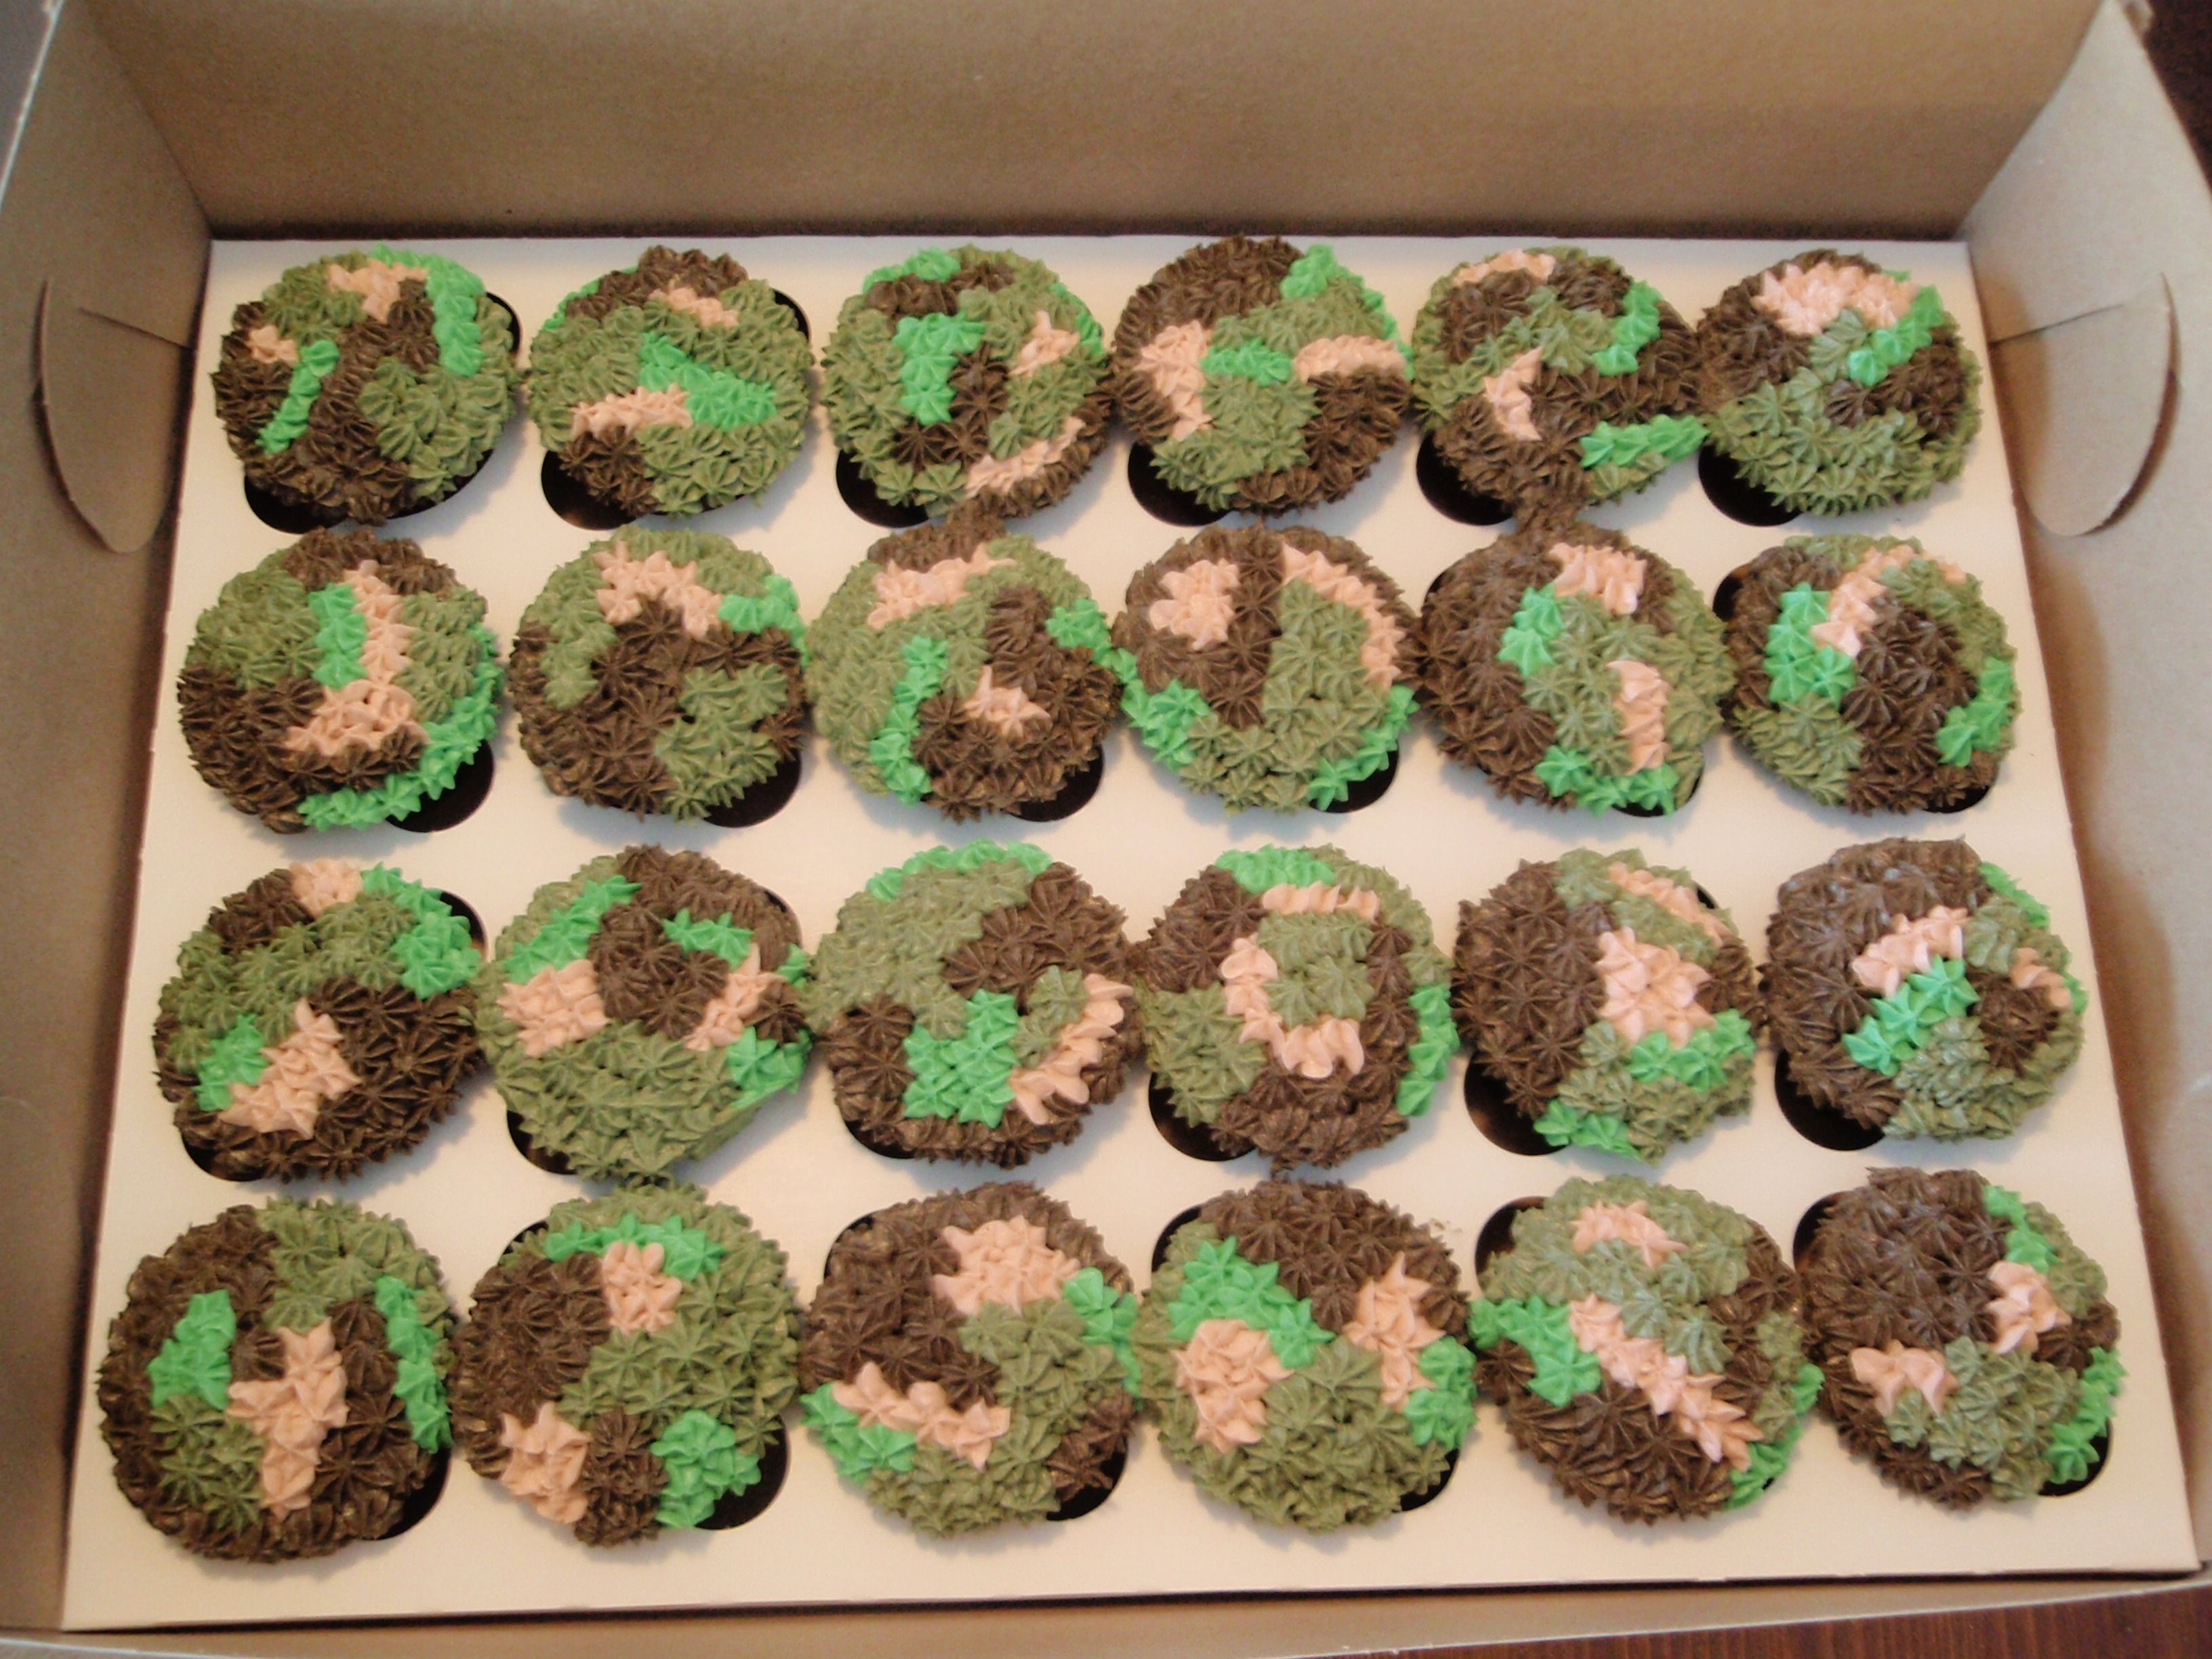 Party Cupcakes Camouflage Chocolate Cupcakes For A 12 Year Old